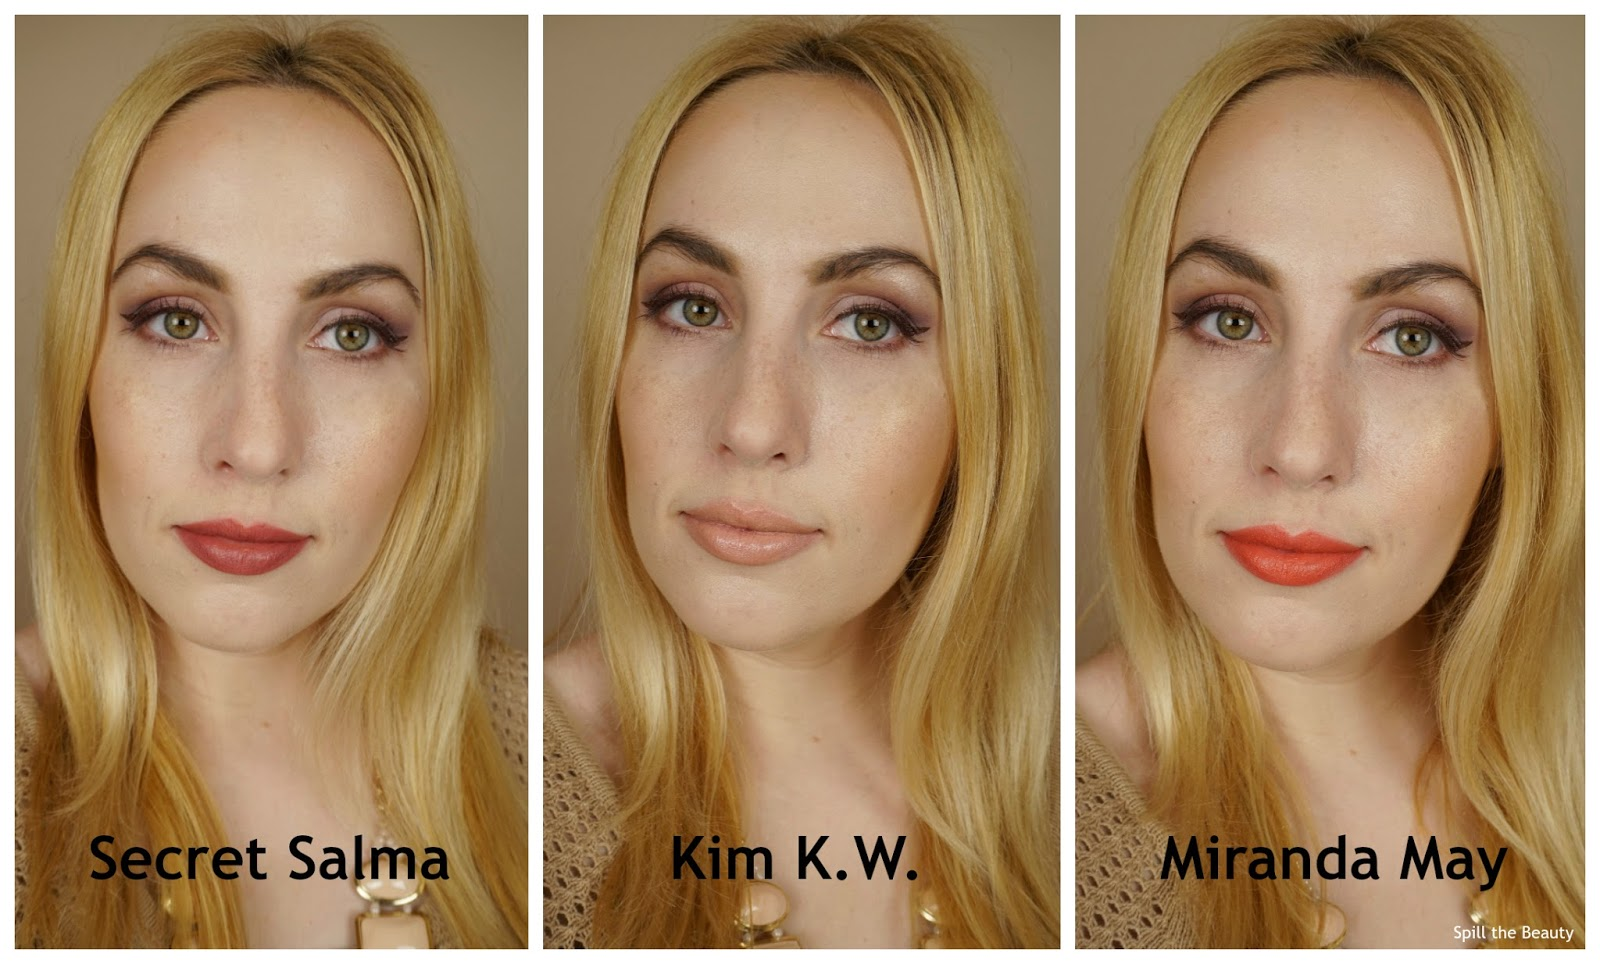 charlotte tilbury hot lips lipstick secret salma kim k.w. miranda may review swatches look arm swatches